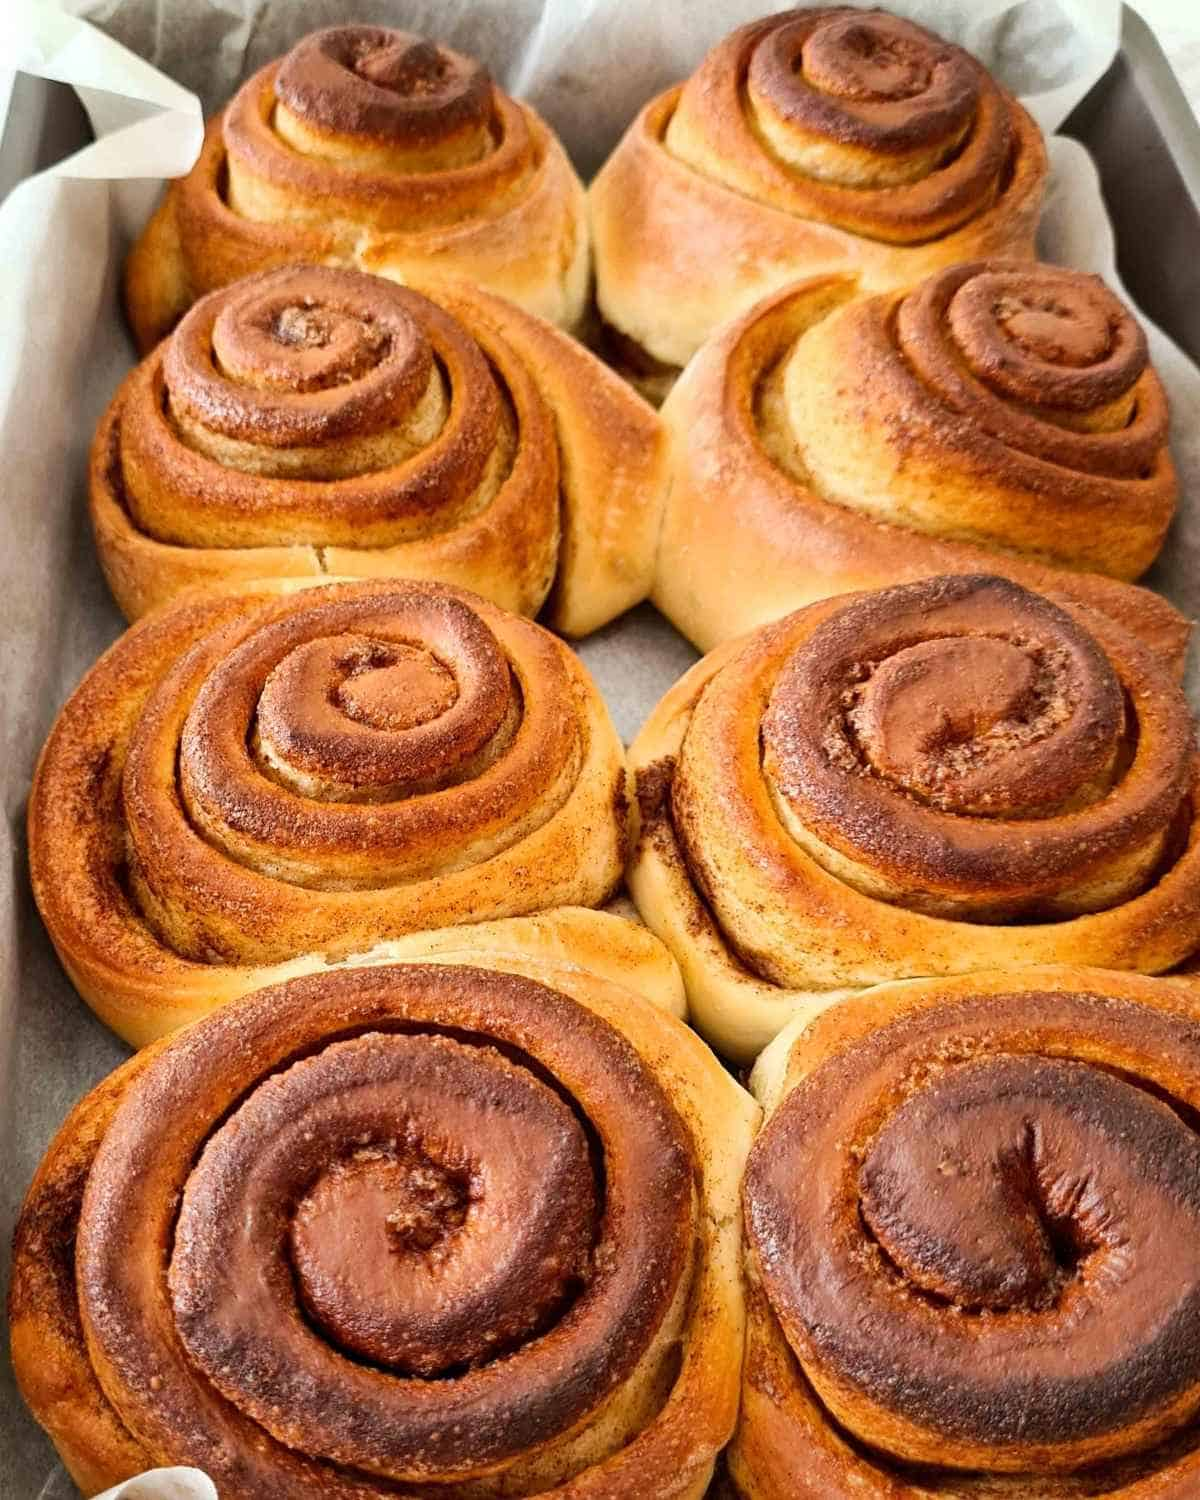 A tray of baked cinnamon rolls ready to be spread with chocolate icing